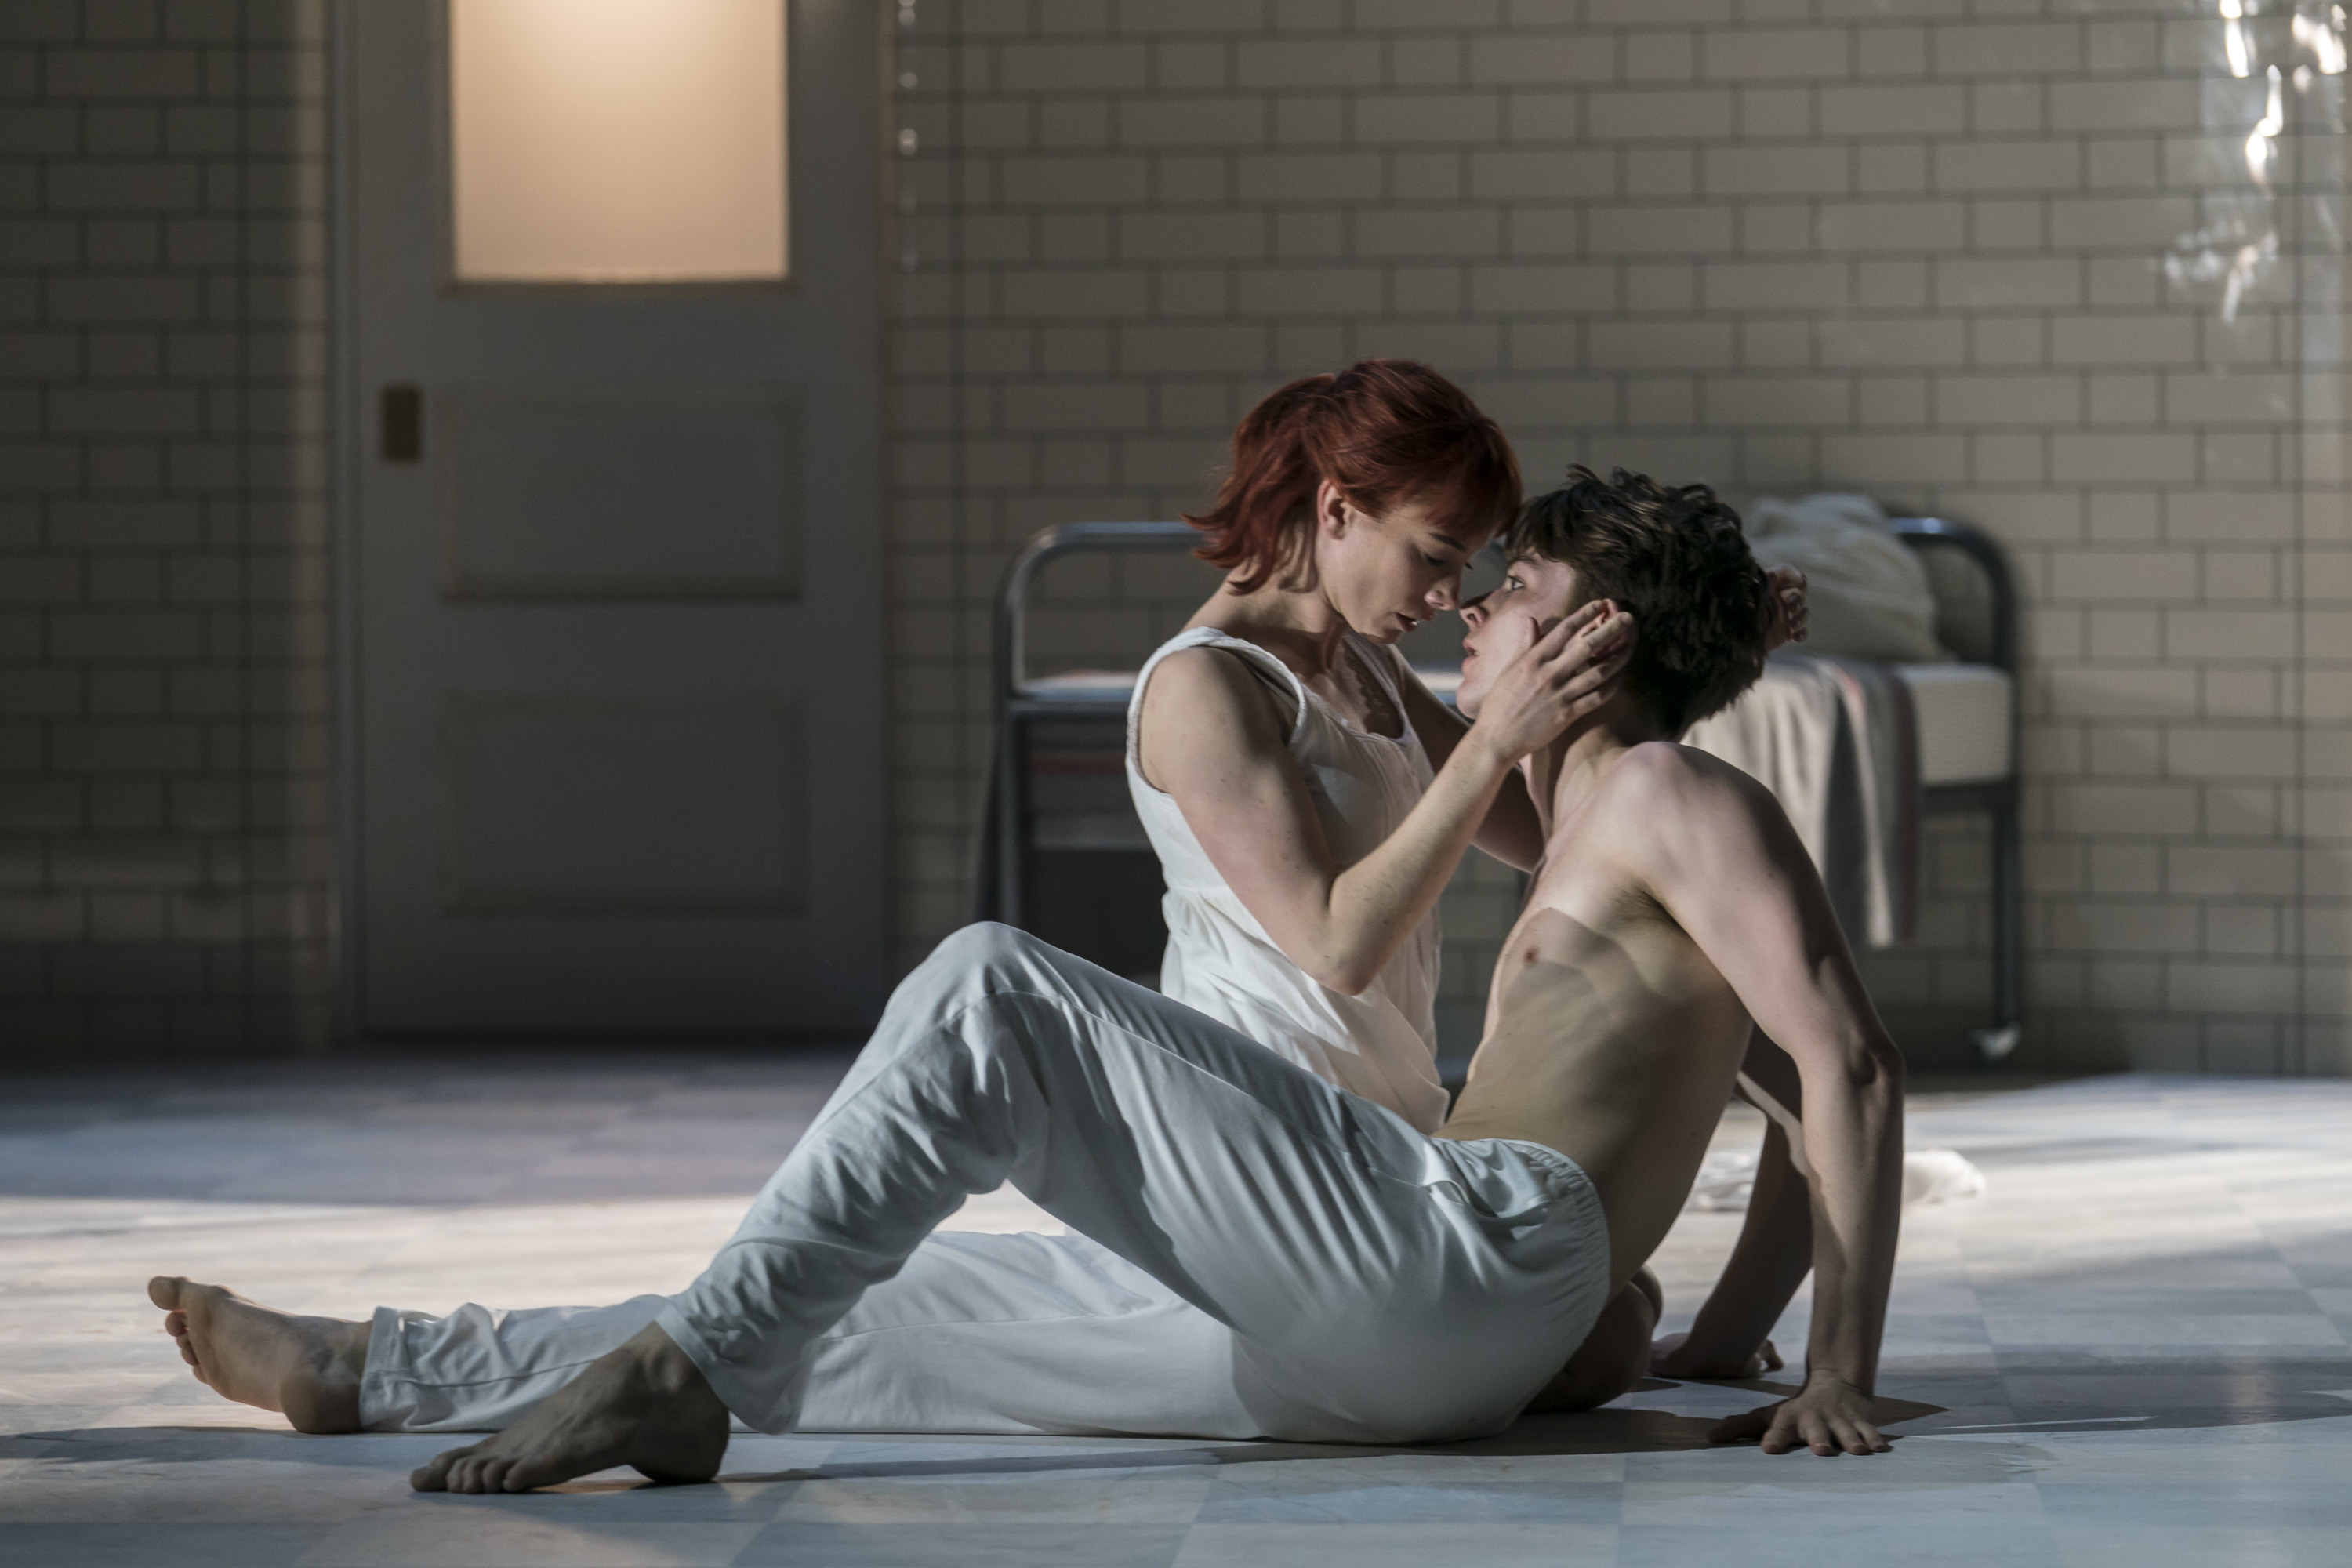 Matthew Bourne's 'Romeo and Juliet' review